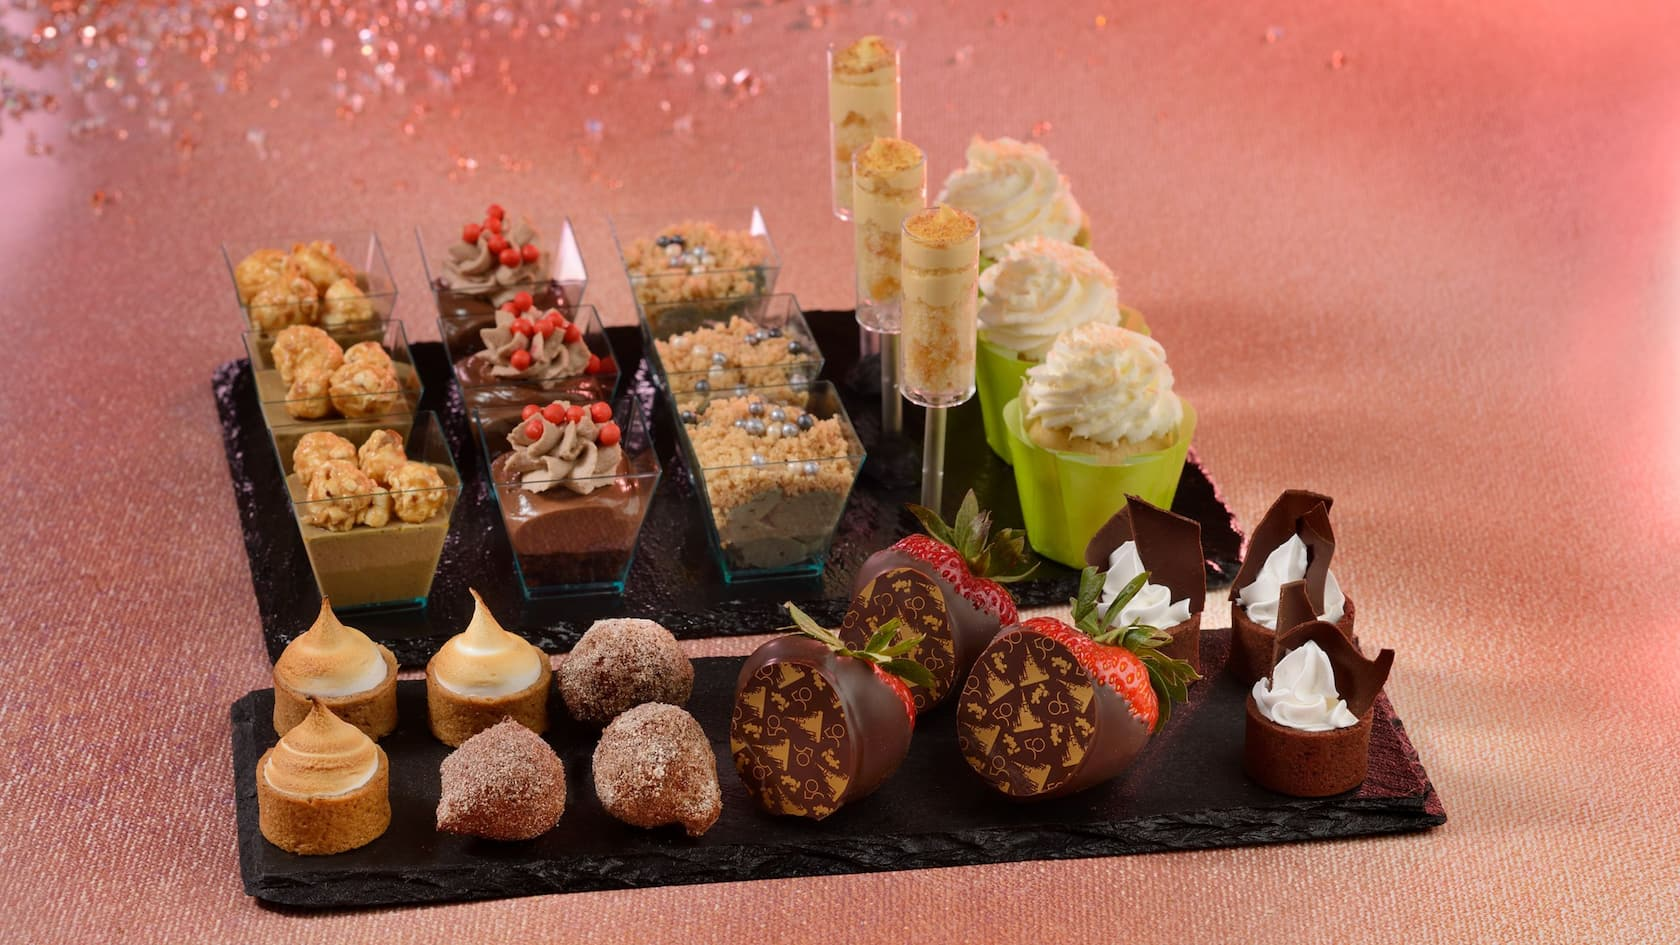 Trays holding 9 different desserts, including chocolate-covered strawberries, butterscotch pudding and pastries